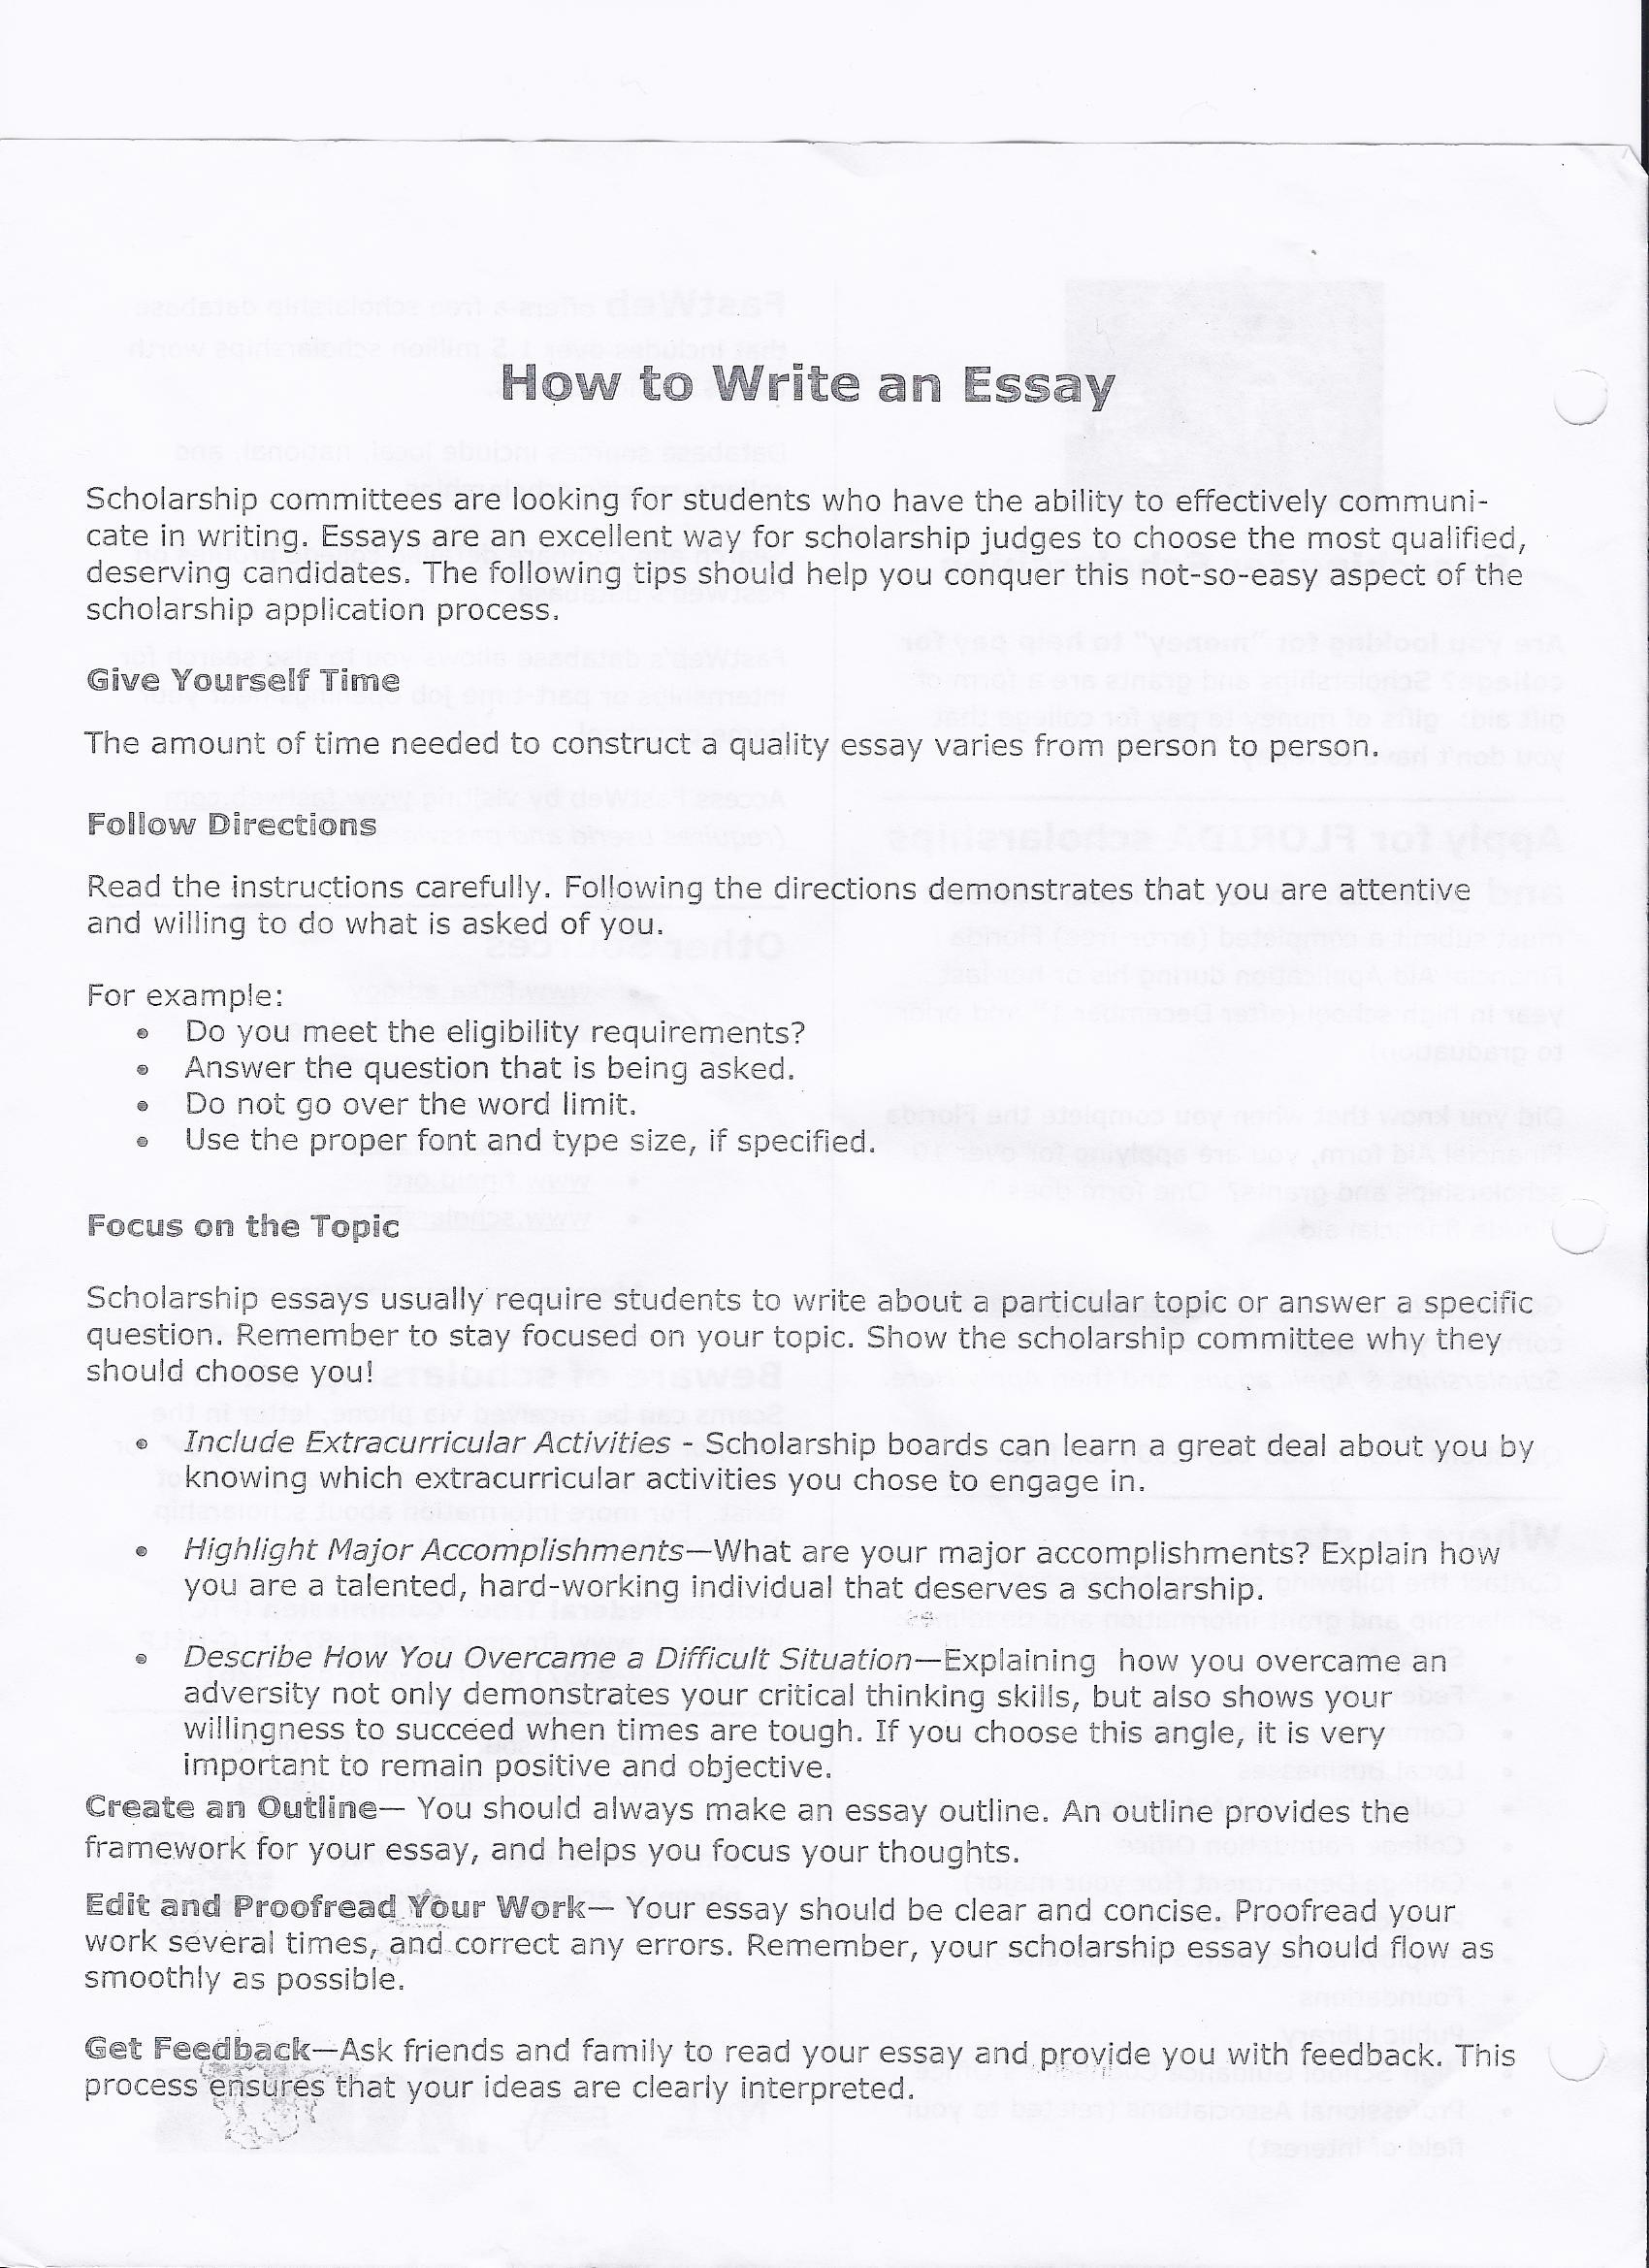 I need help with a college essay?